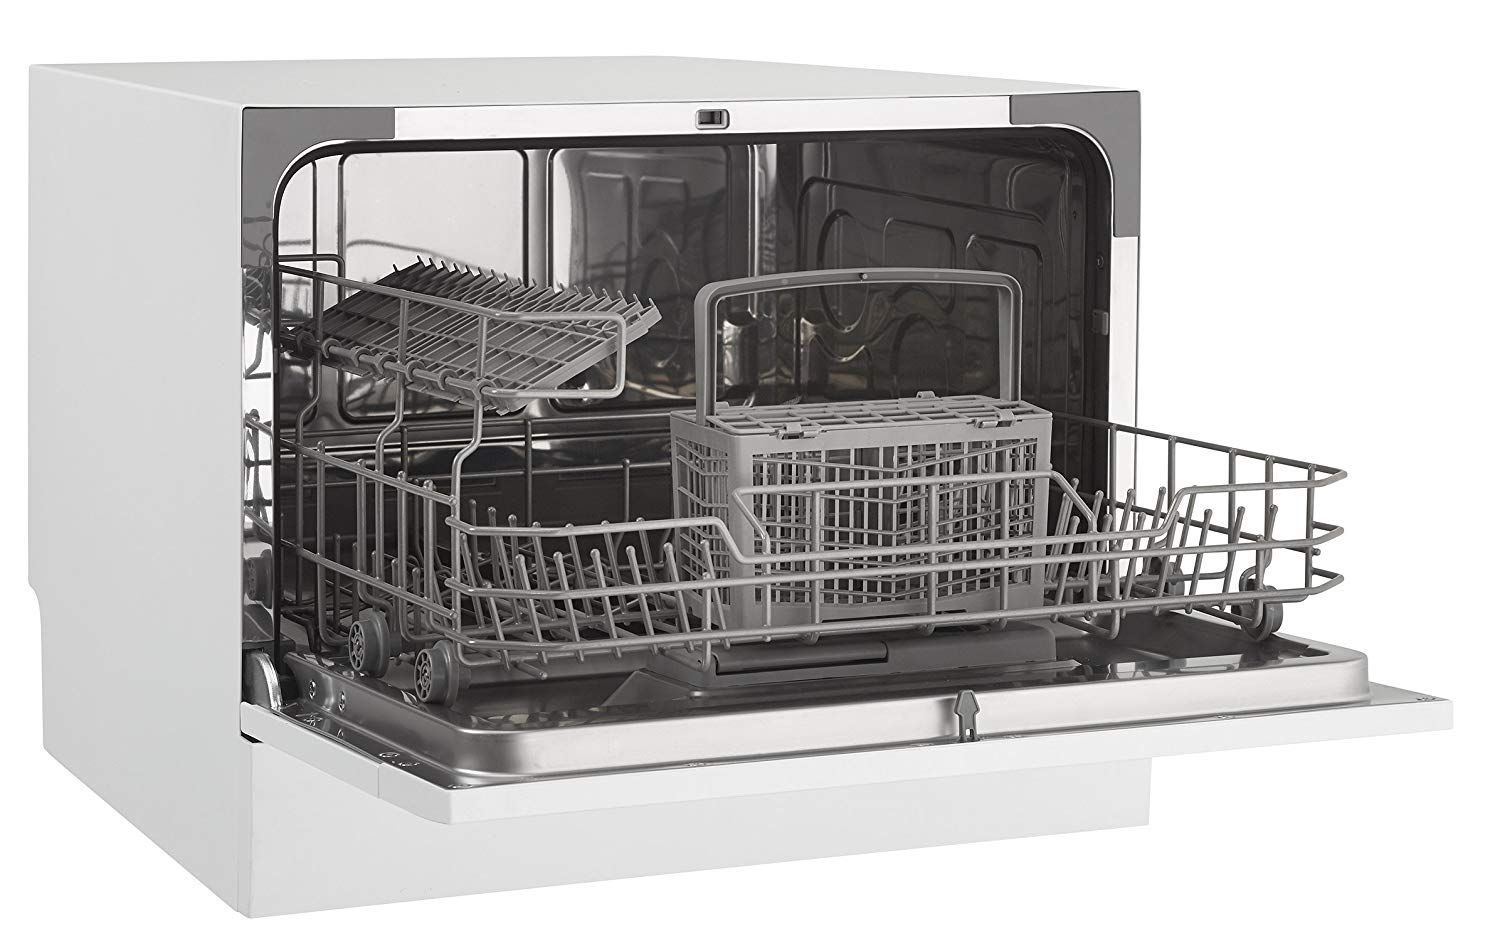 Danby Ddw496w Countertop Dishwasher This Is An Amazon Affiliate Link For More Information Visit Image Link Countertop Dishwasher Cool Kitchens Dishwasher